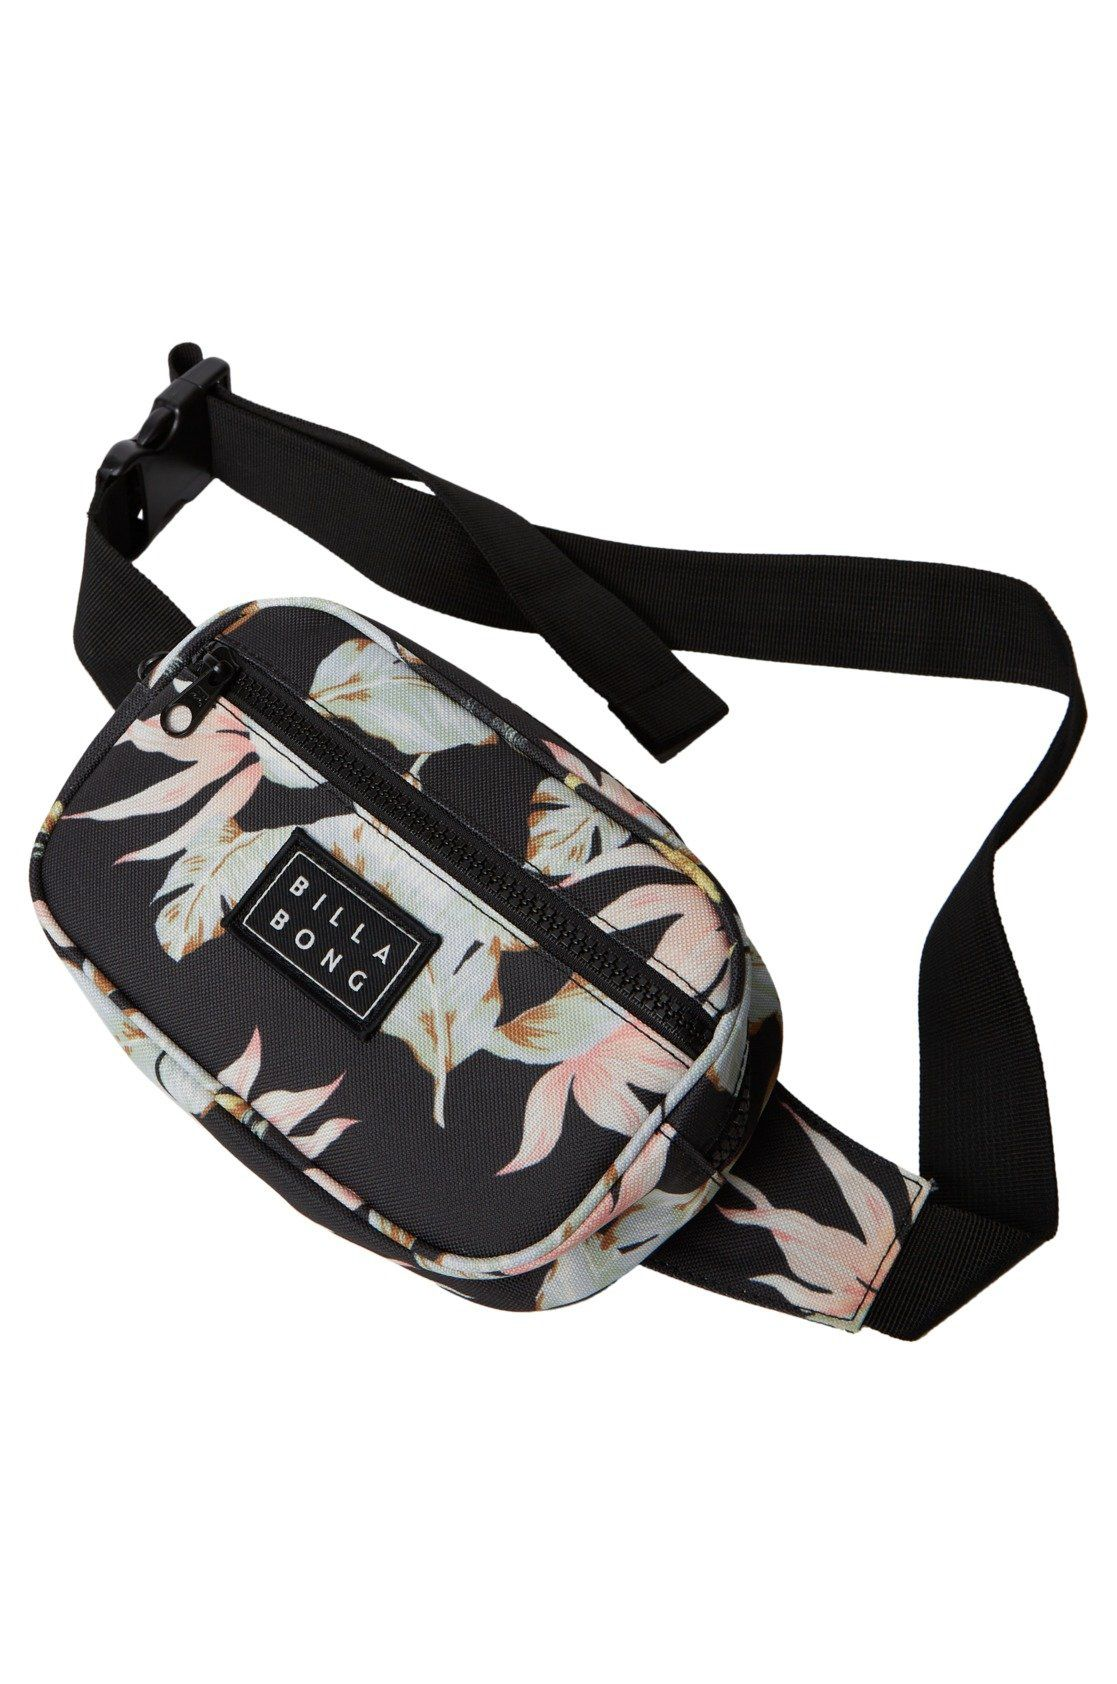 Bolsa Cintura Billabong DON'T STOP Black/Mint